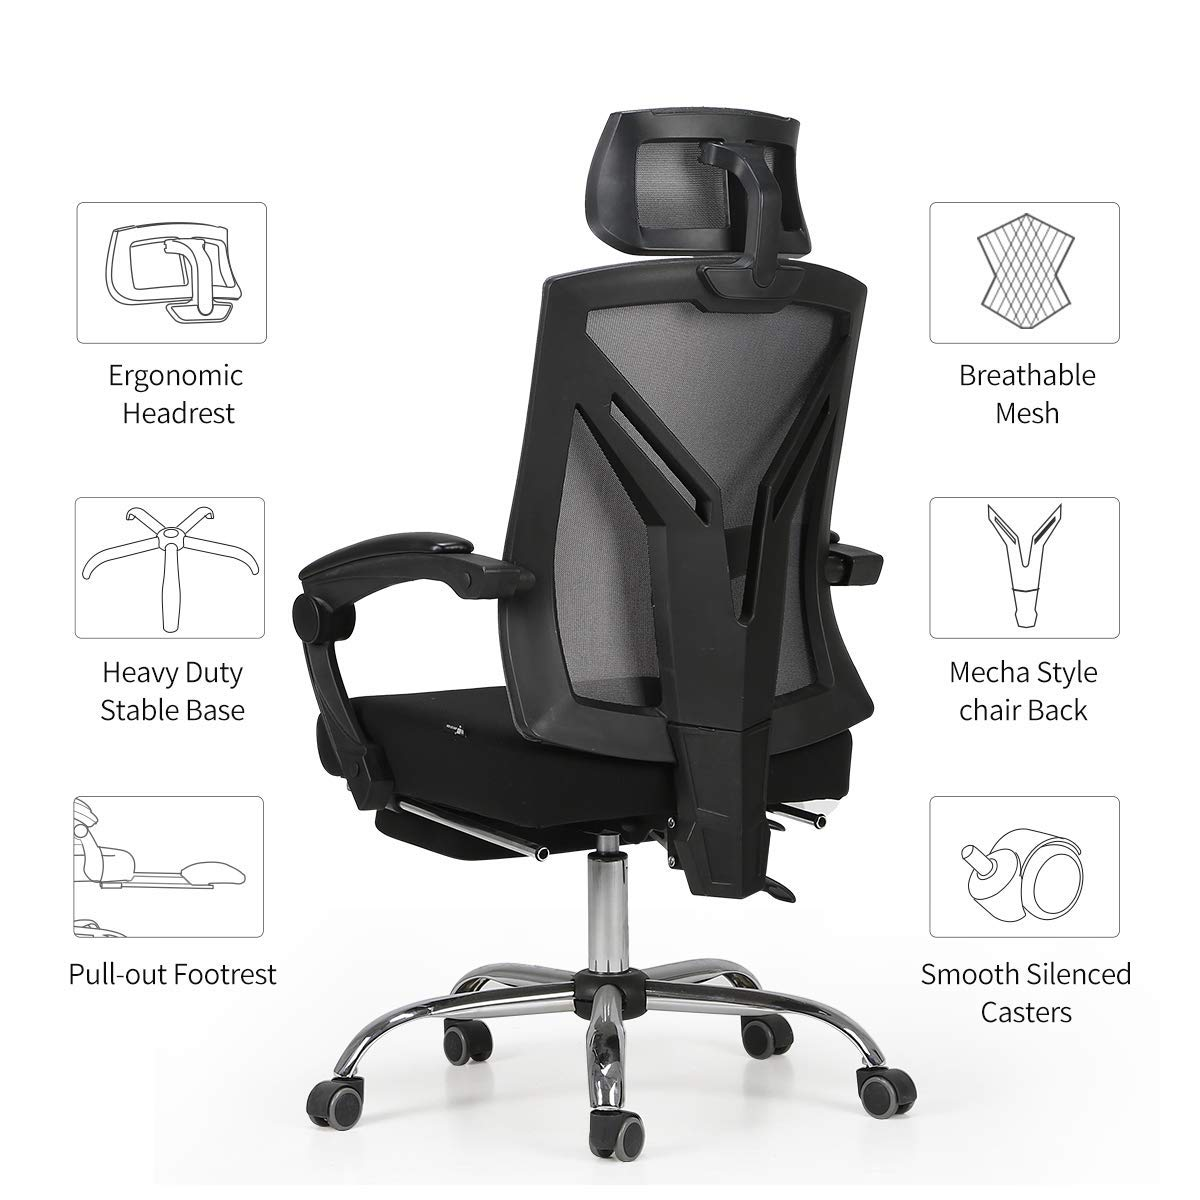 Hbada Ergonomic Office Recliner Chair - High-Back Desk Chair Racing Style with Lumbar Support - Height Adjustable Seat, Headrest- Breathable Mesh Back - Soft Foam Seat Cushion with Footrest, Black by Hbada (Image #9)